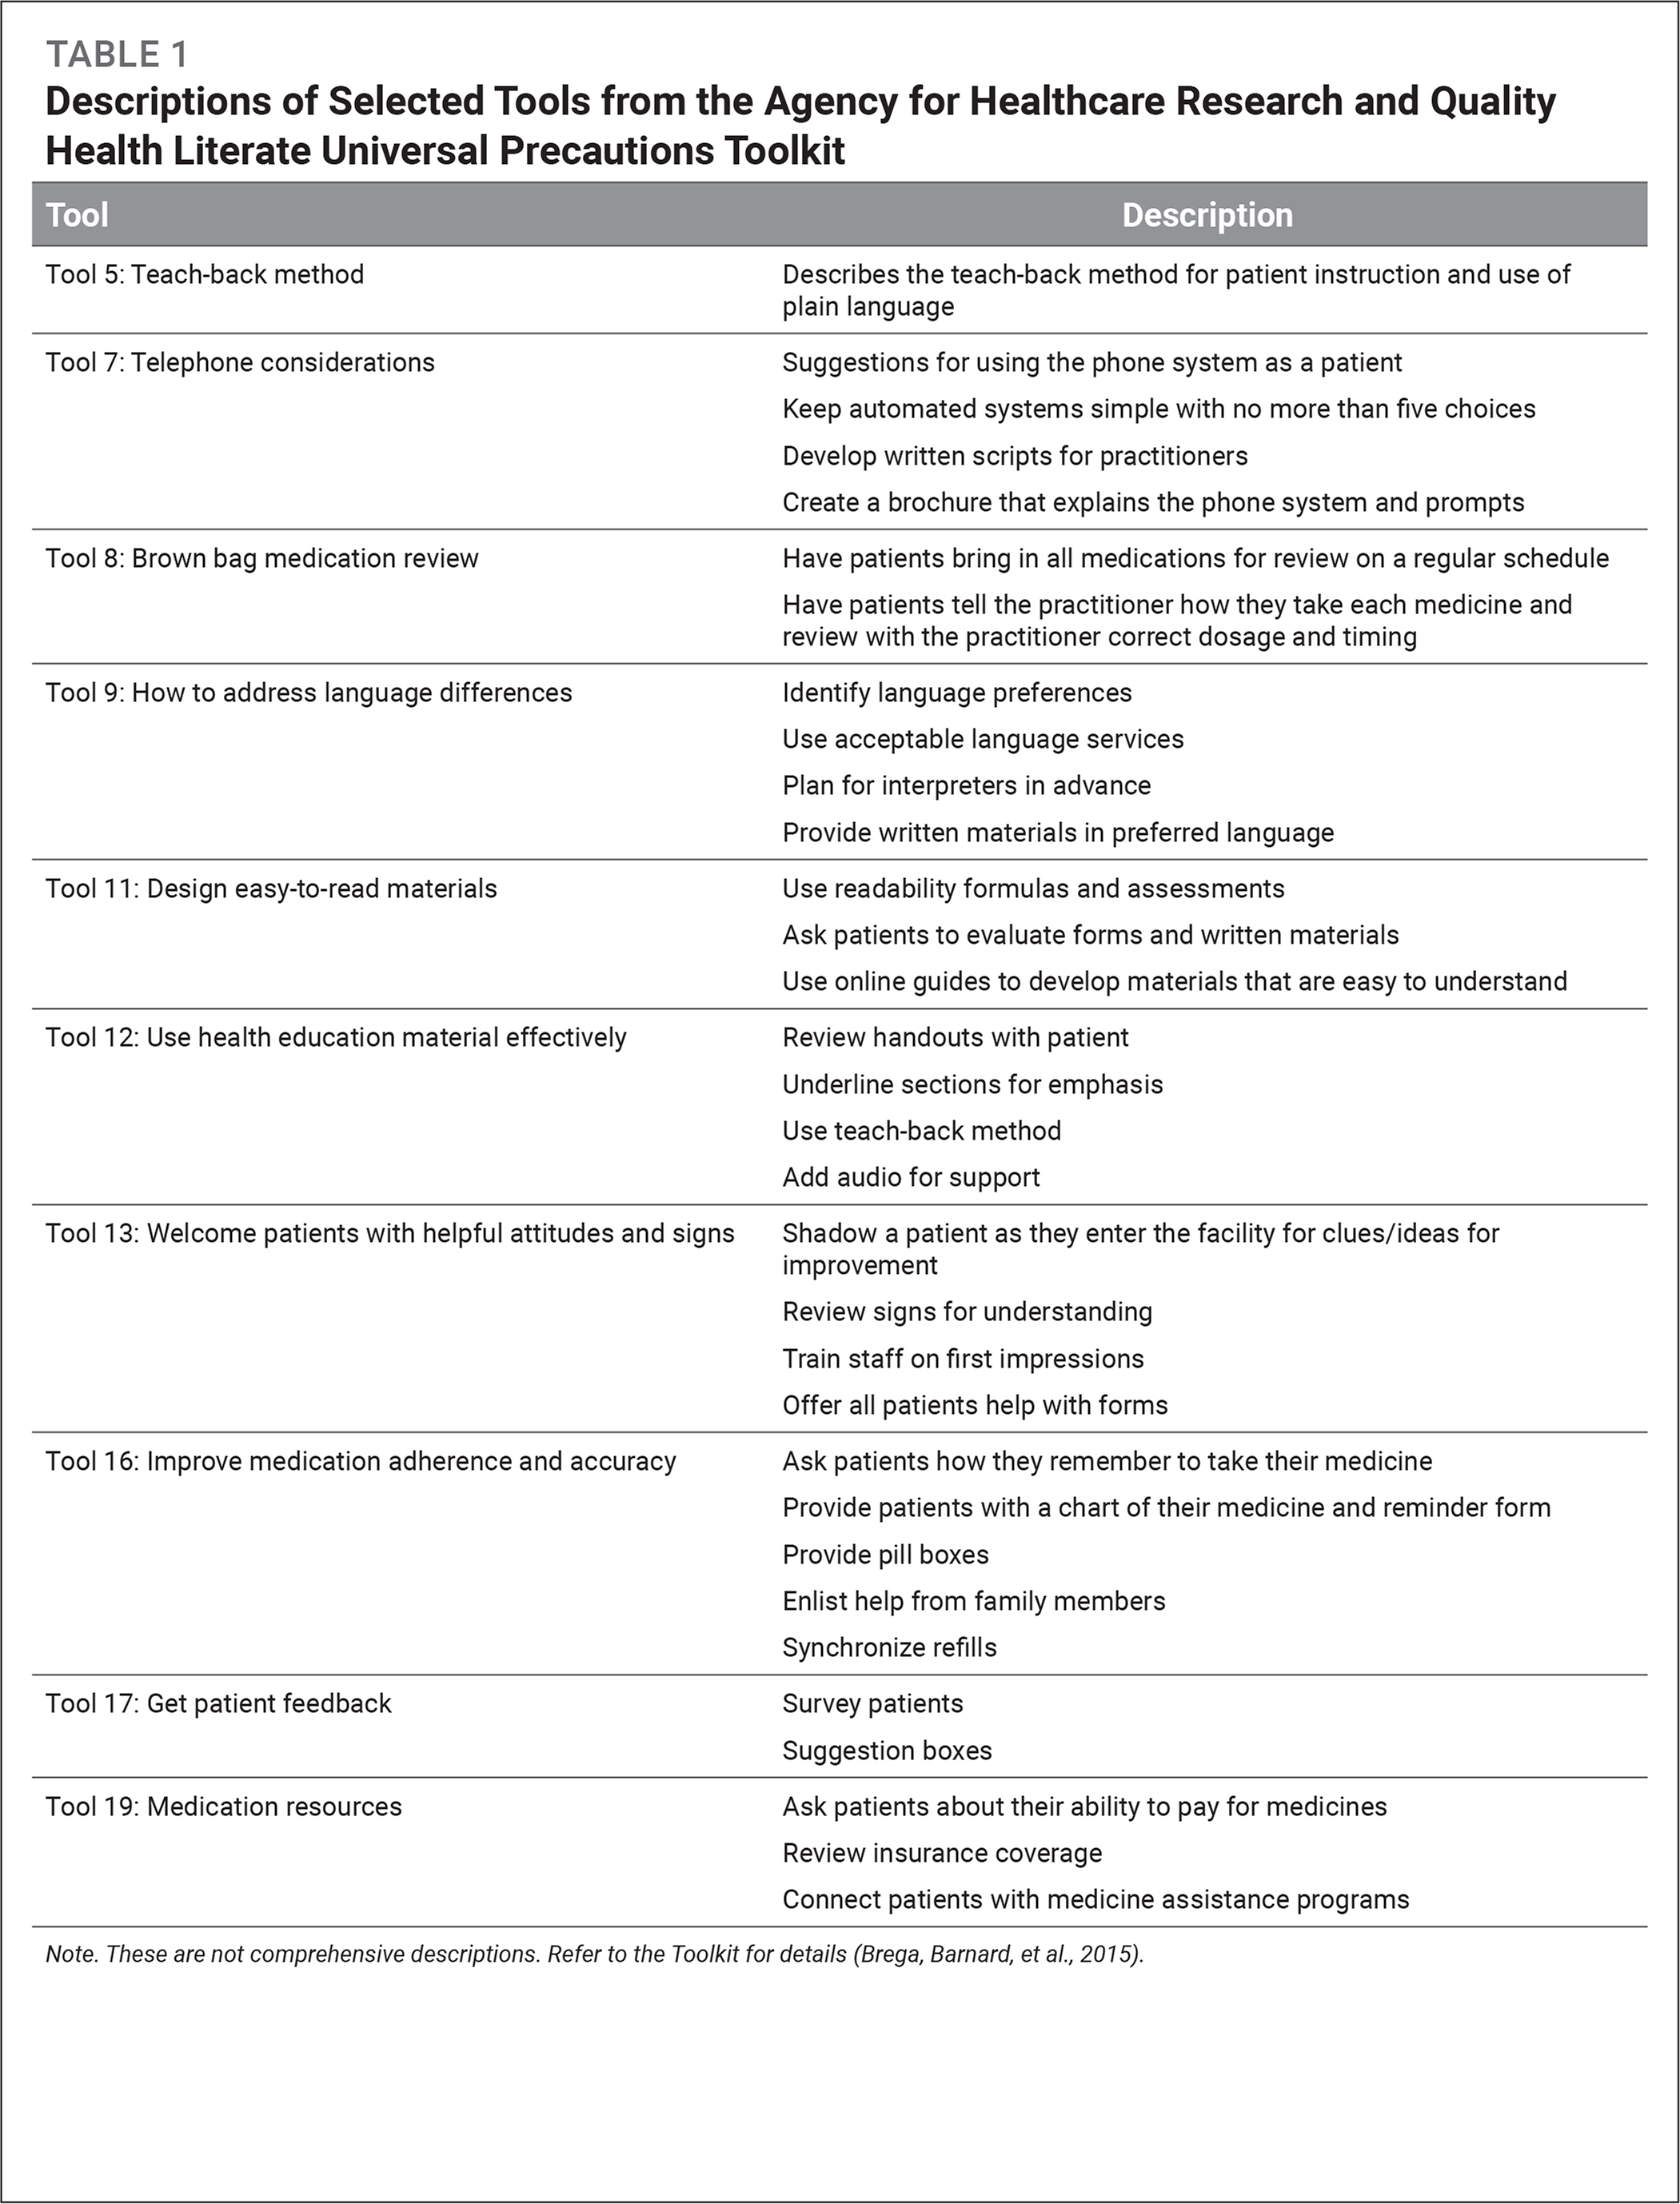 Descriptions of Selected Tools from the Agency for Healthcare Research and Quality Health Literate Universal Precautions Toolkit